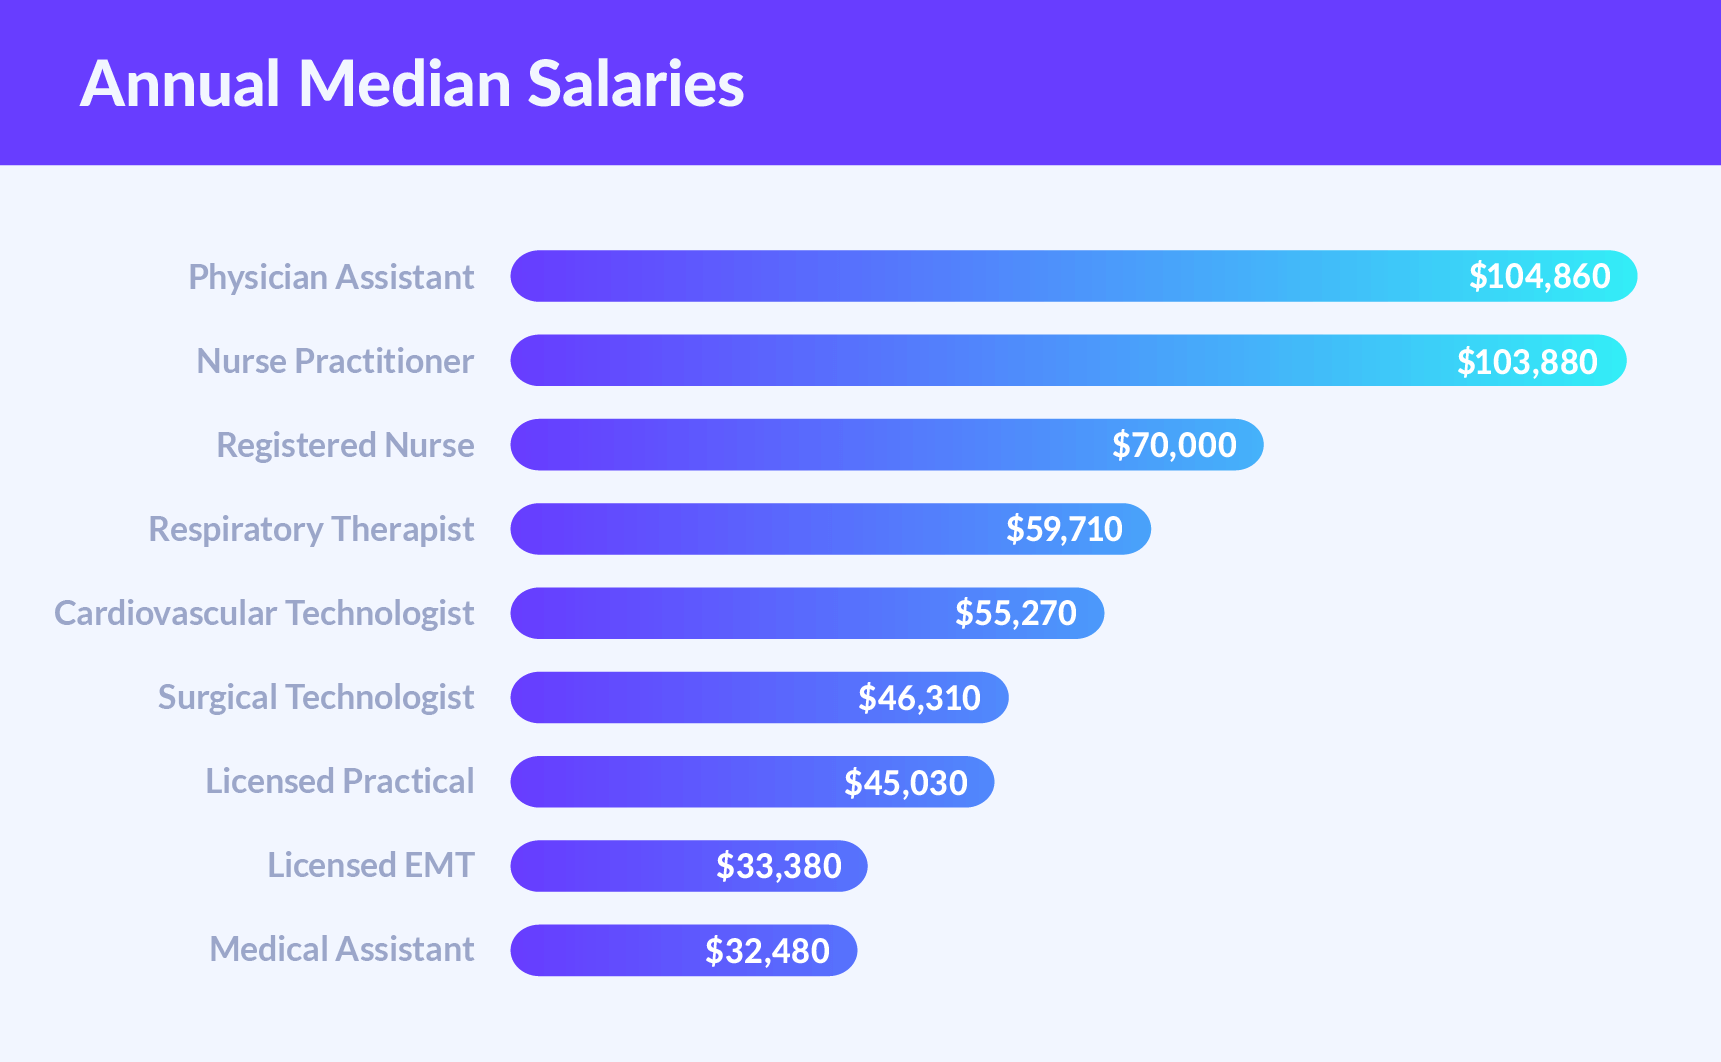 annual median nurse salaries chart Medical Assistant Hourly Pay 2019